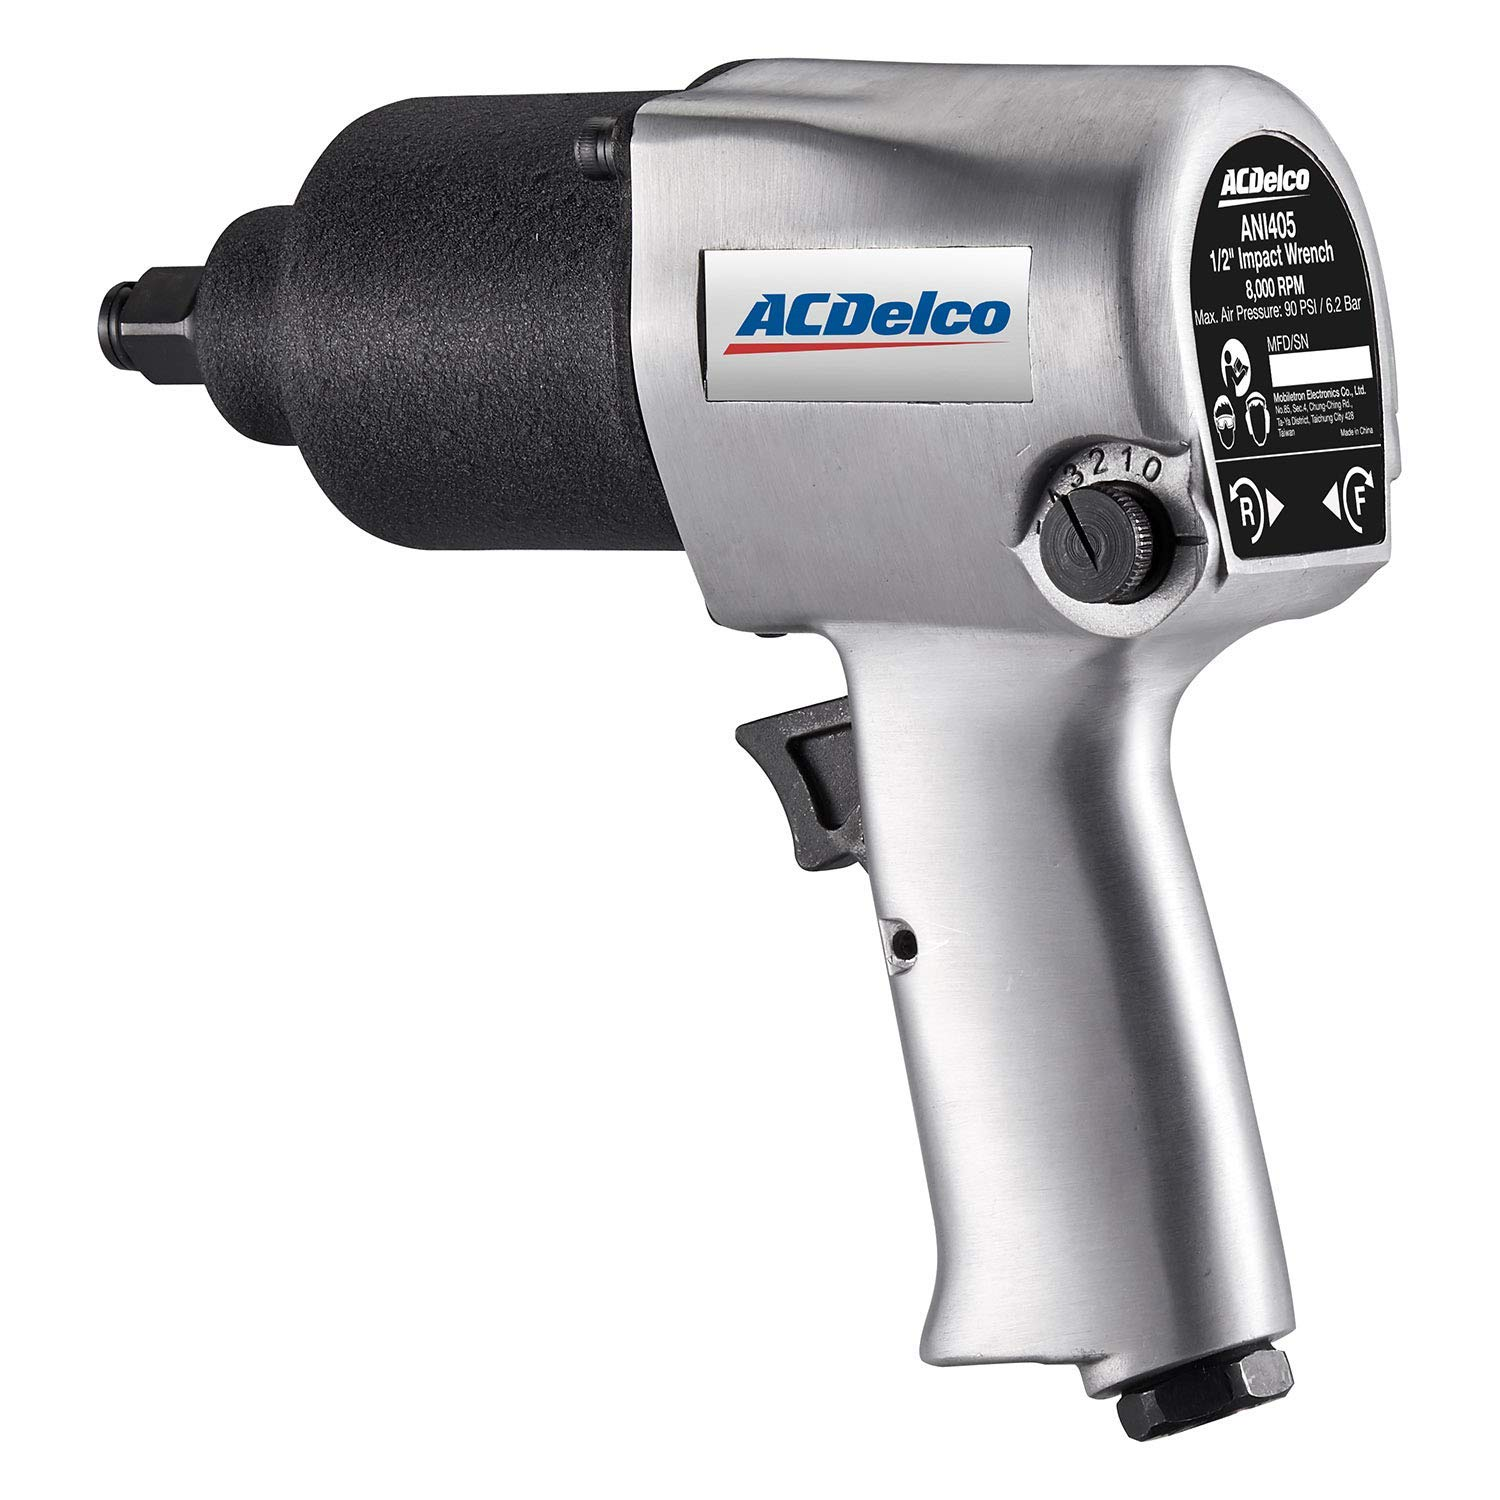 "ACDelco ANI405 Heavy Duty Twin Hammer 1/2"" Air Impact Wrench Pneumatic Tools"